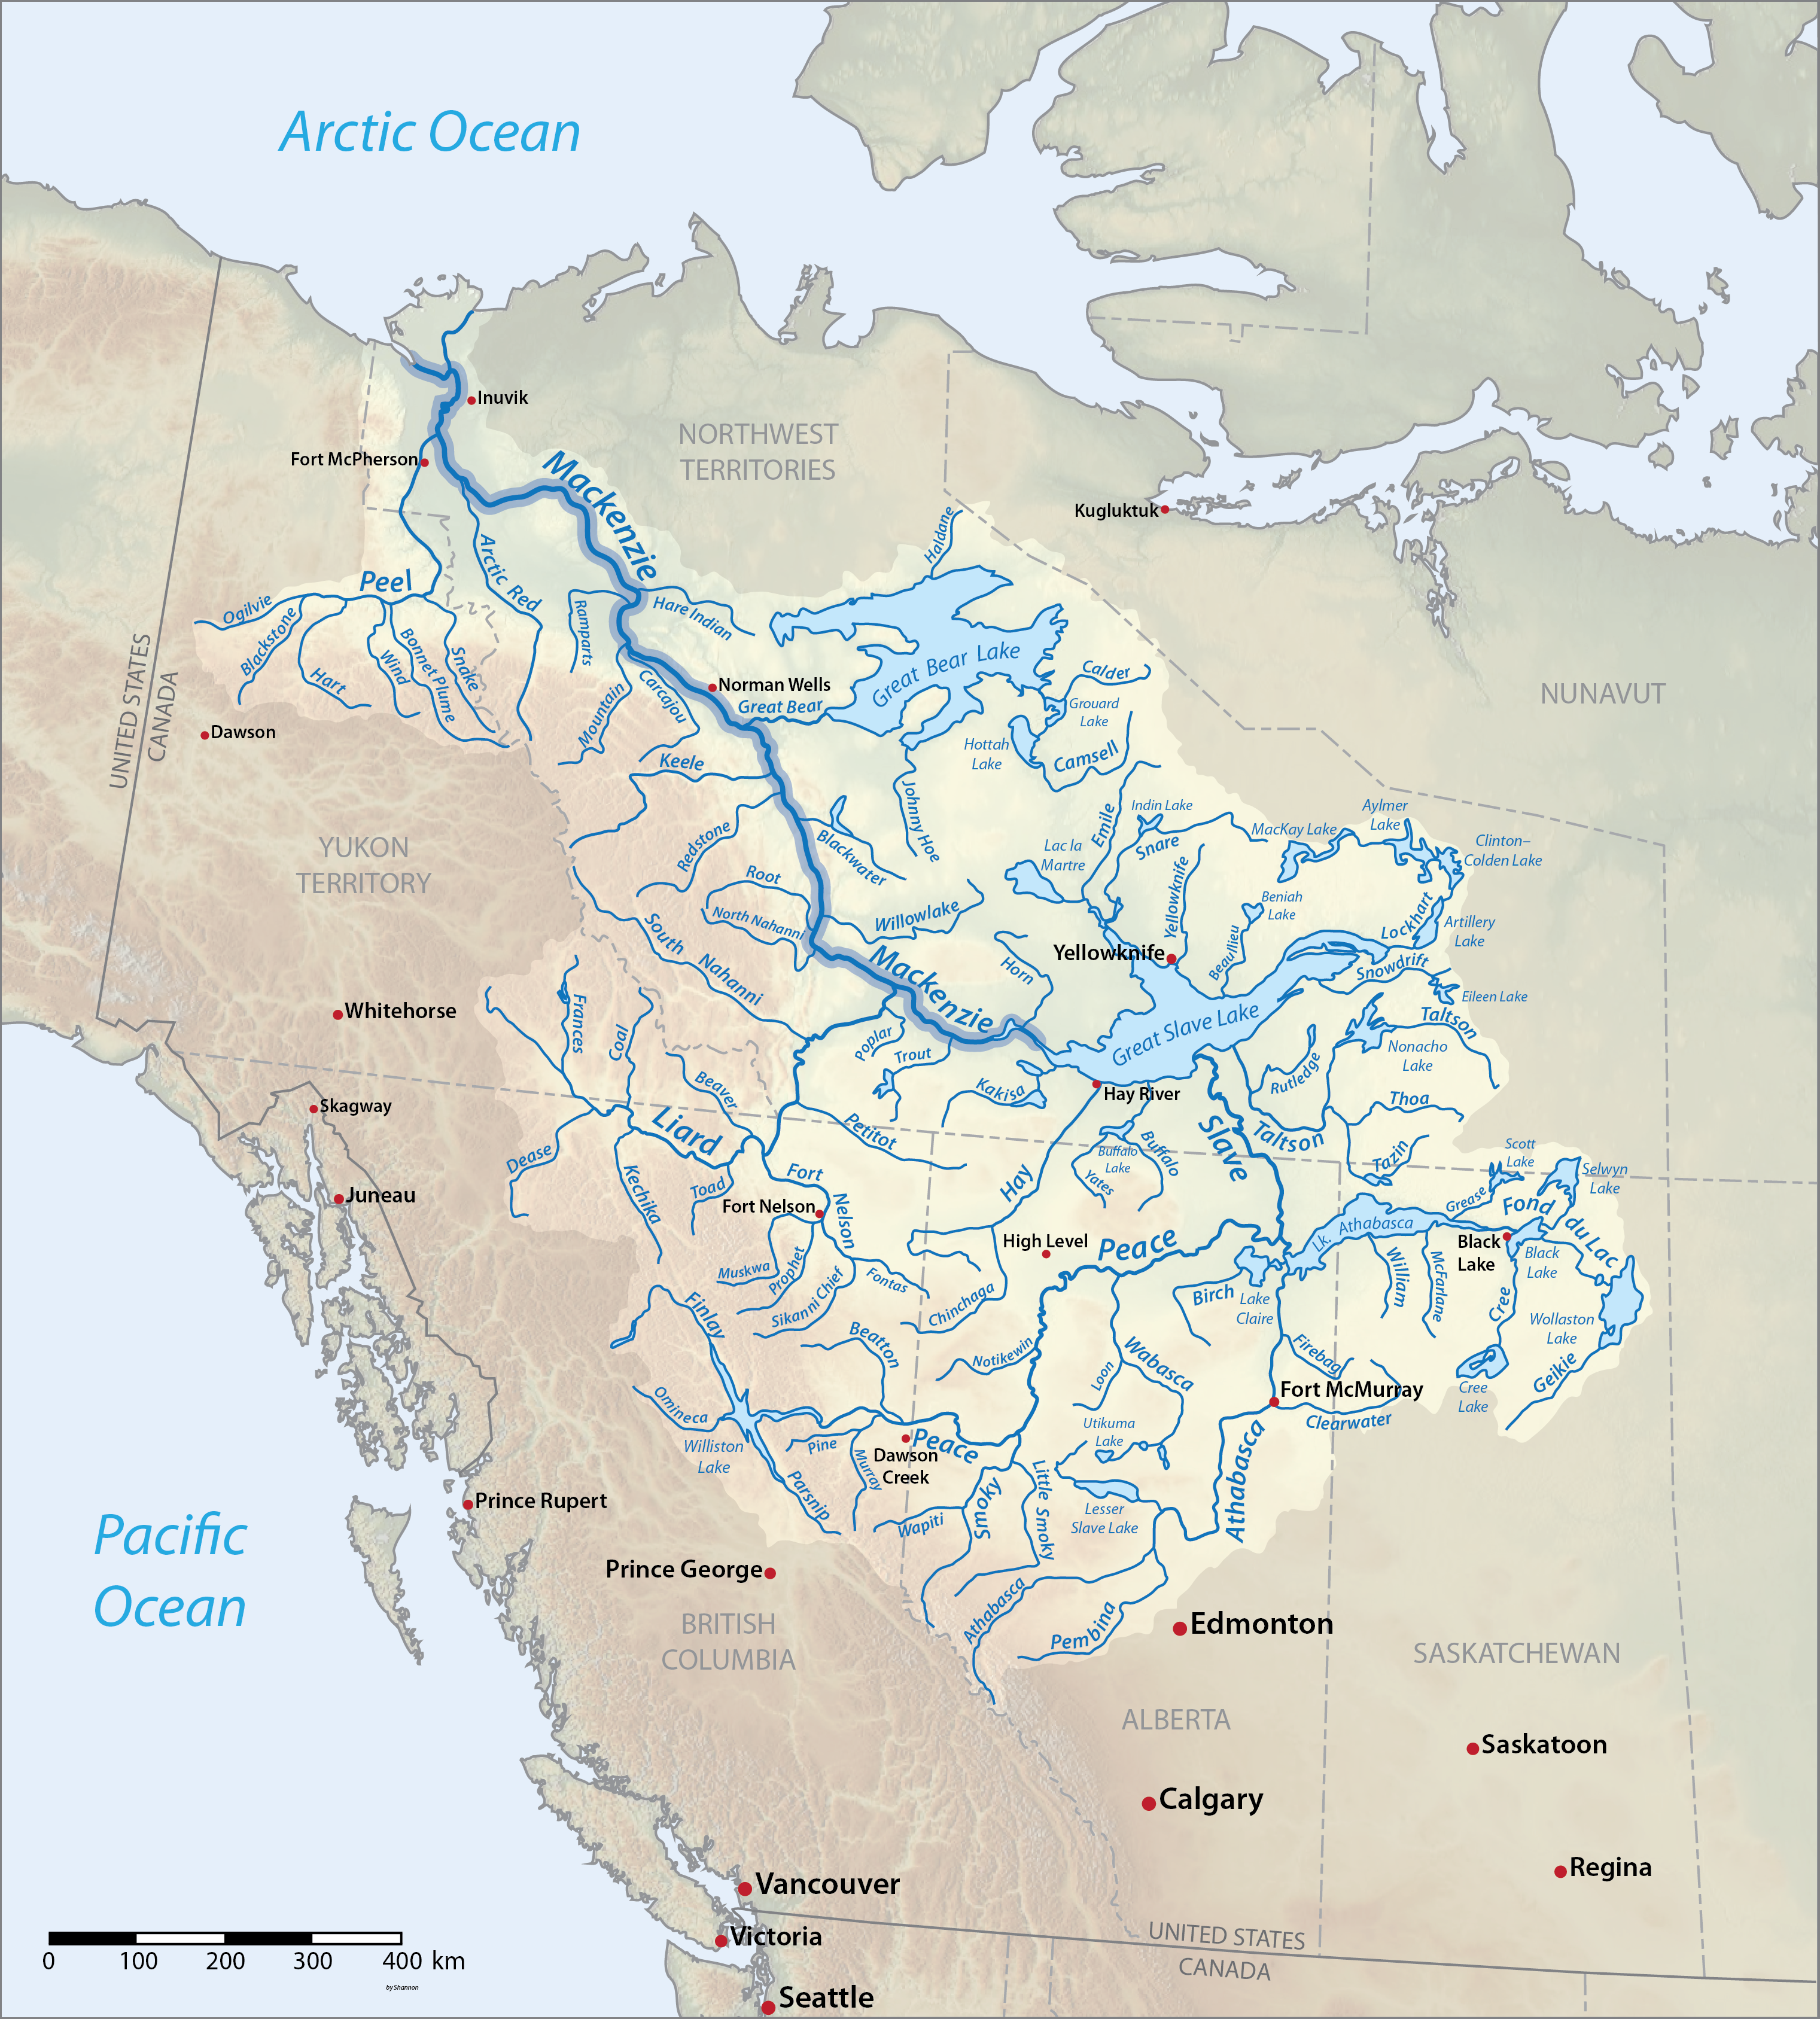 Map of Mackenzie watershed including tributaries and major lakes